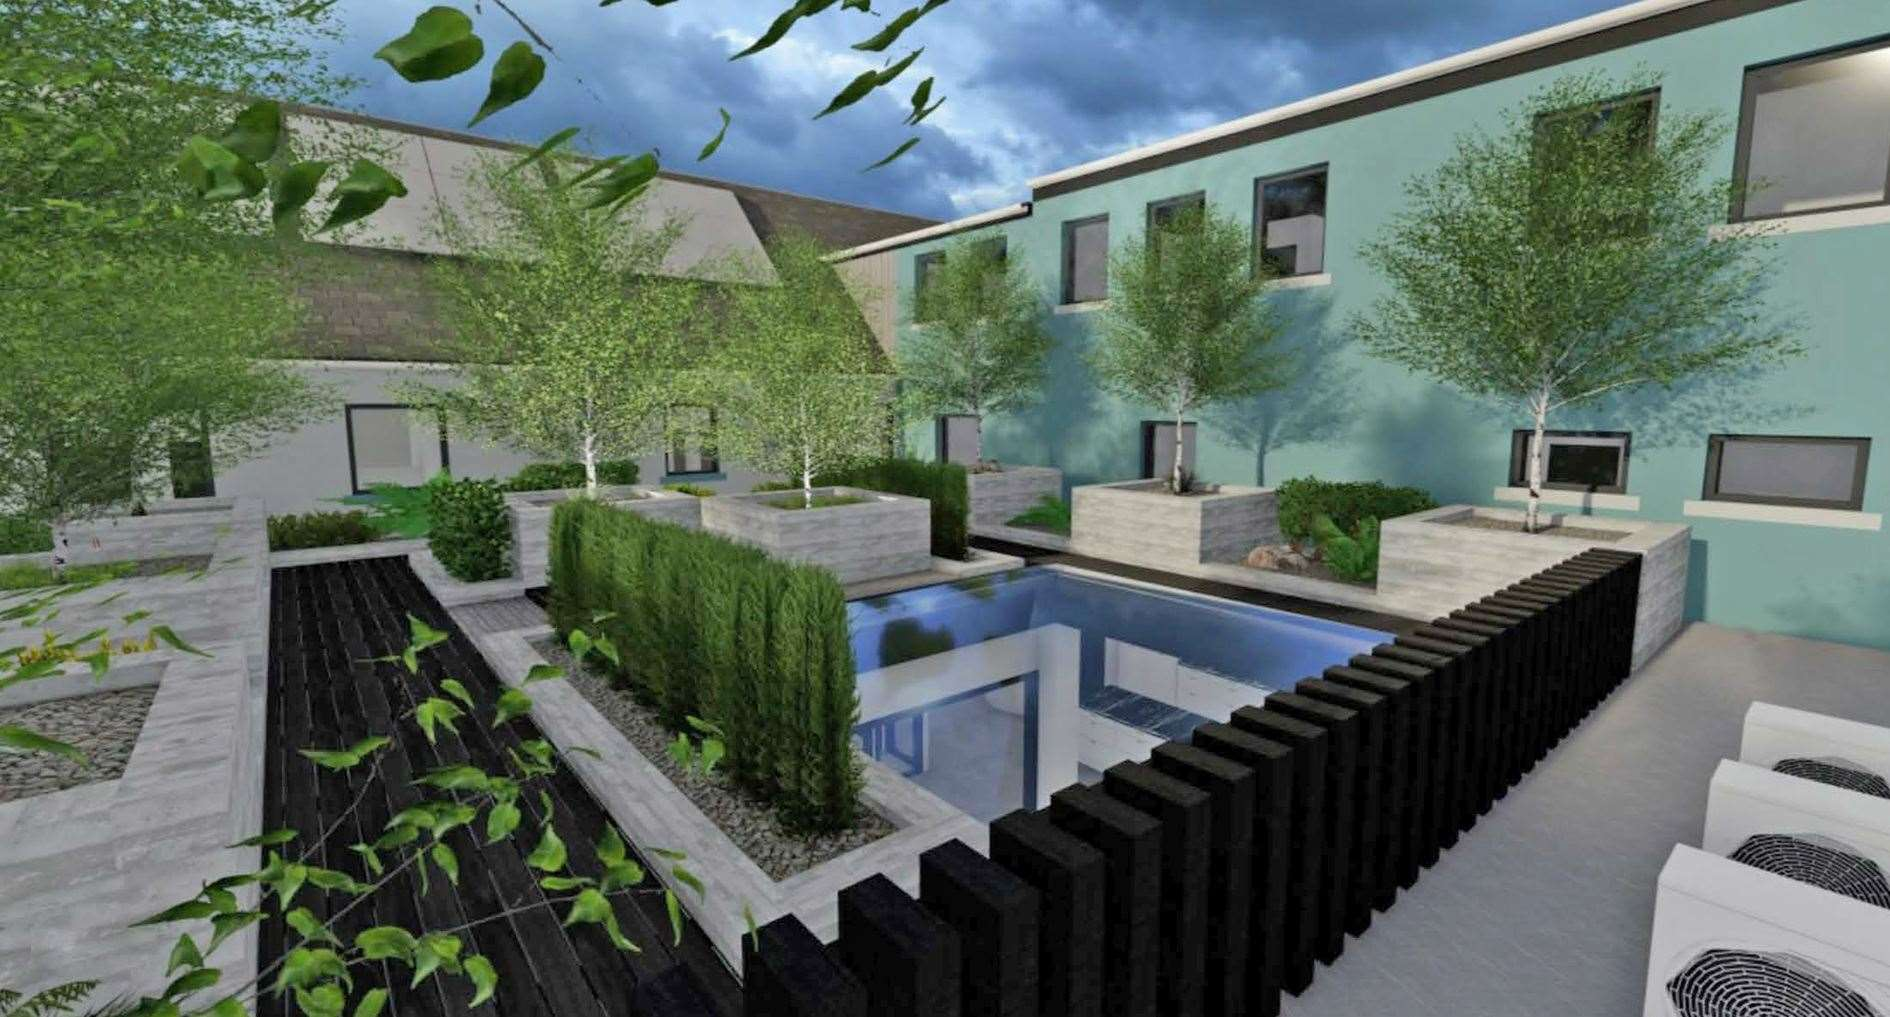 Artist's impression of the landscaped courtyard.